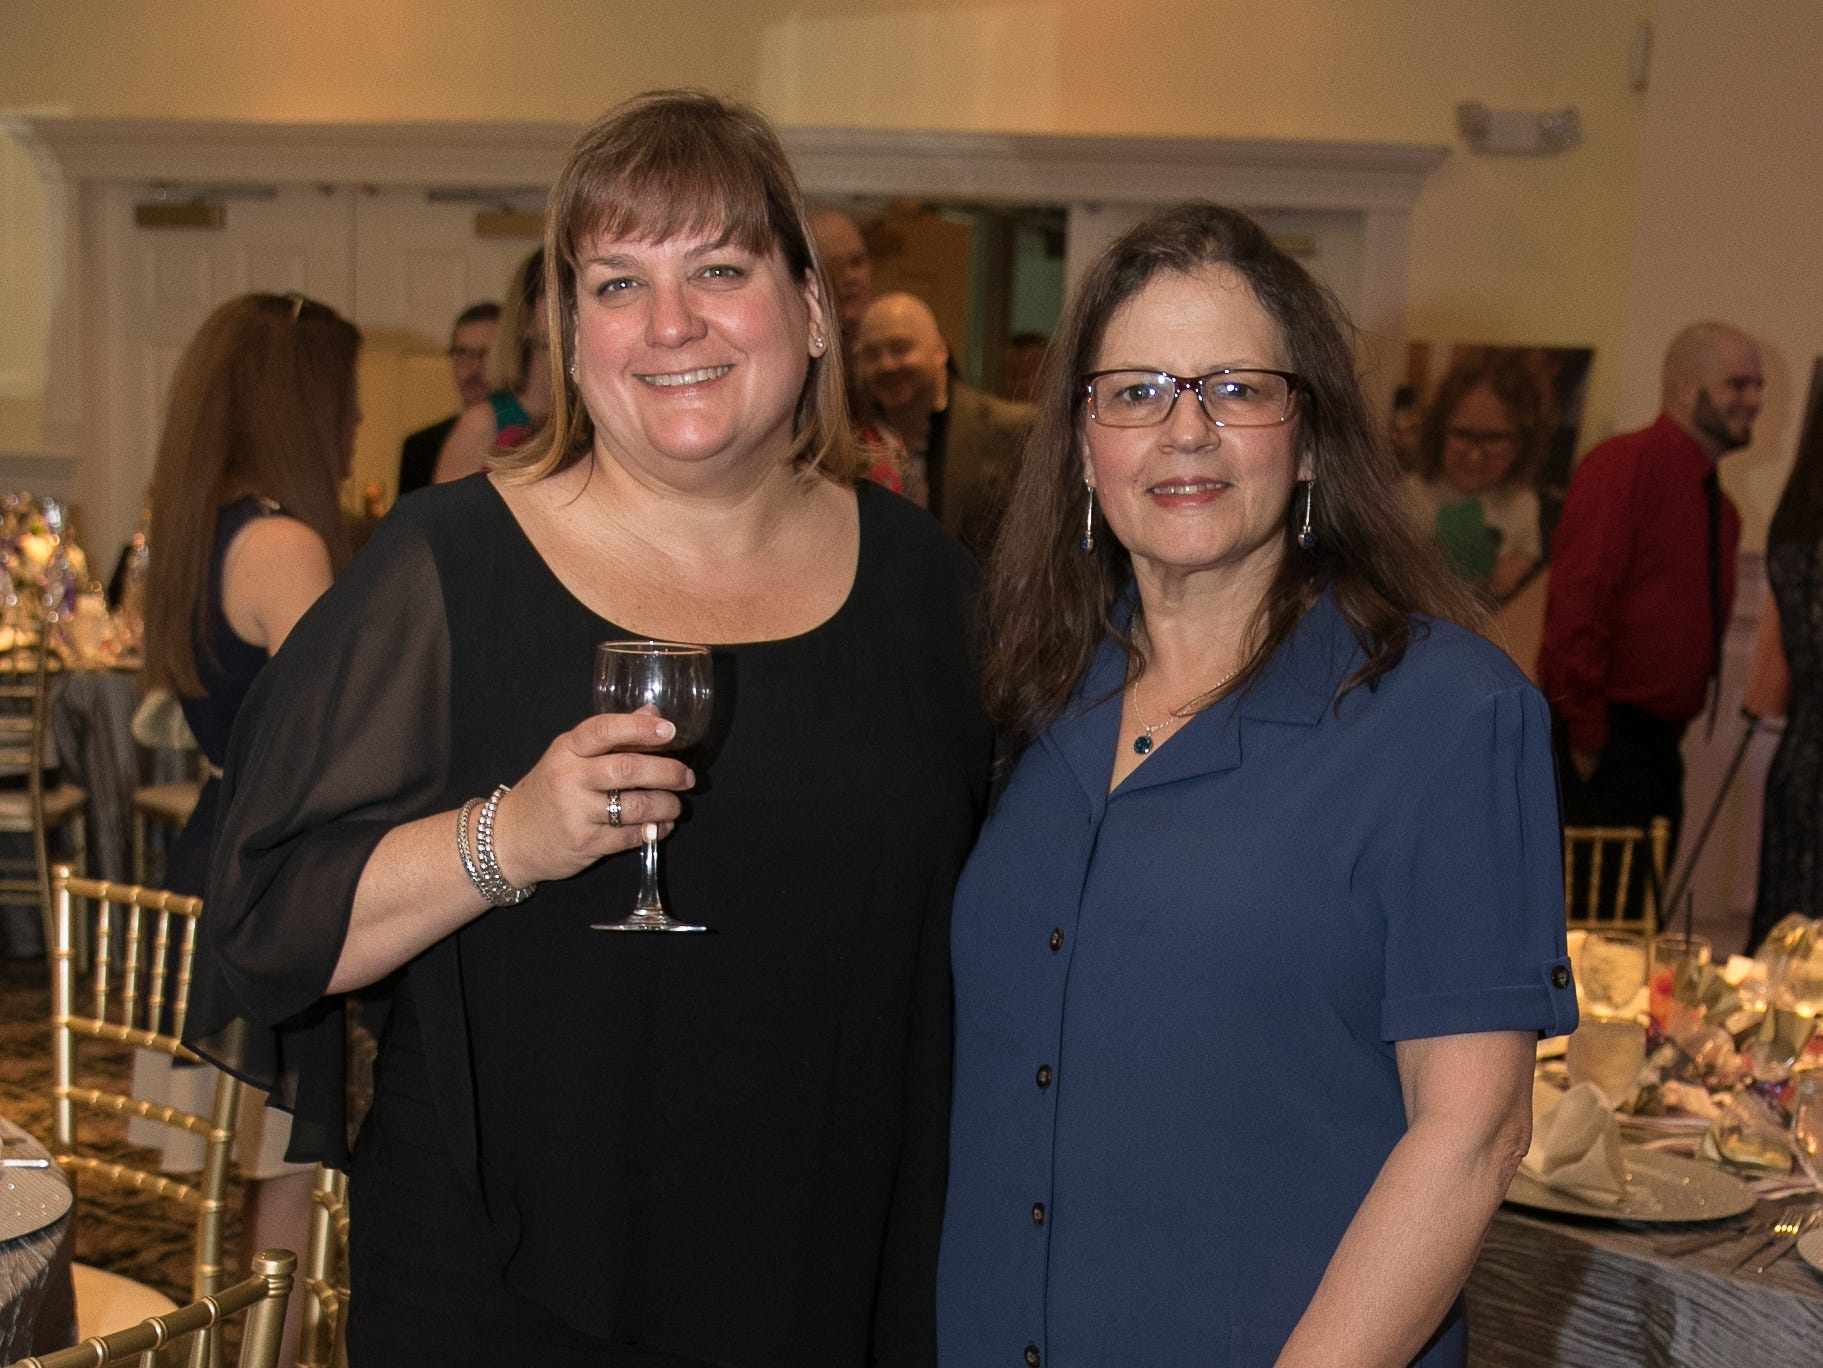 Teresa Golin, Sue Quimby. The Emmanuel Cancer Foundation 9th Annual Bash at The Brick House. 03/15/2019